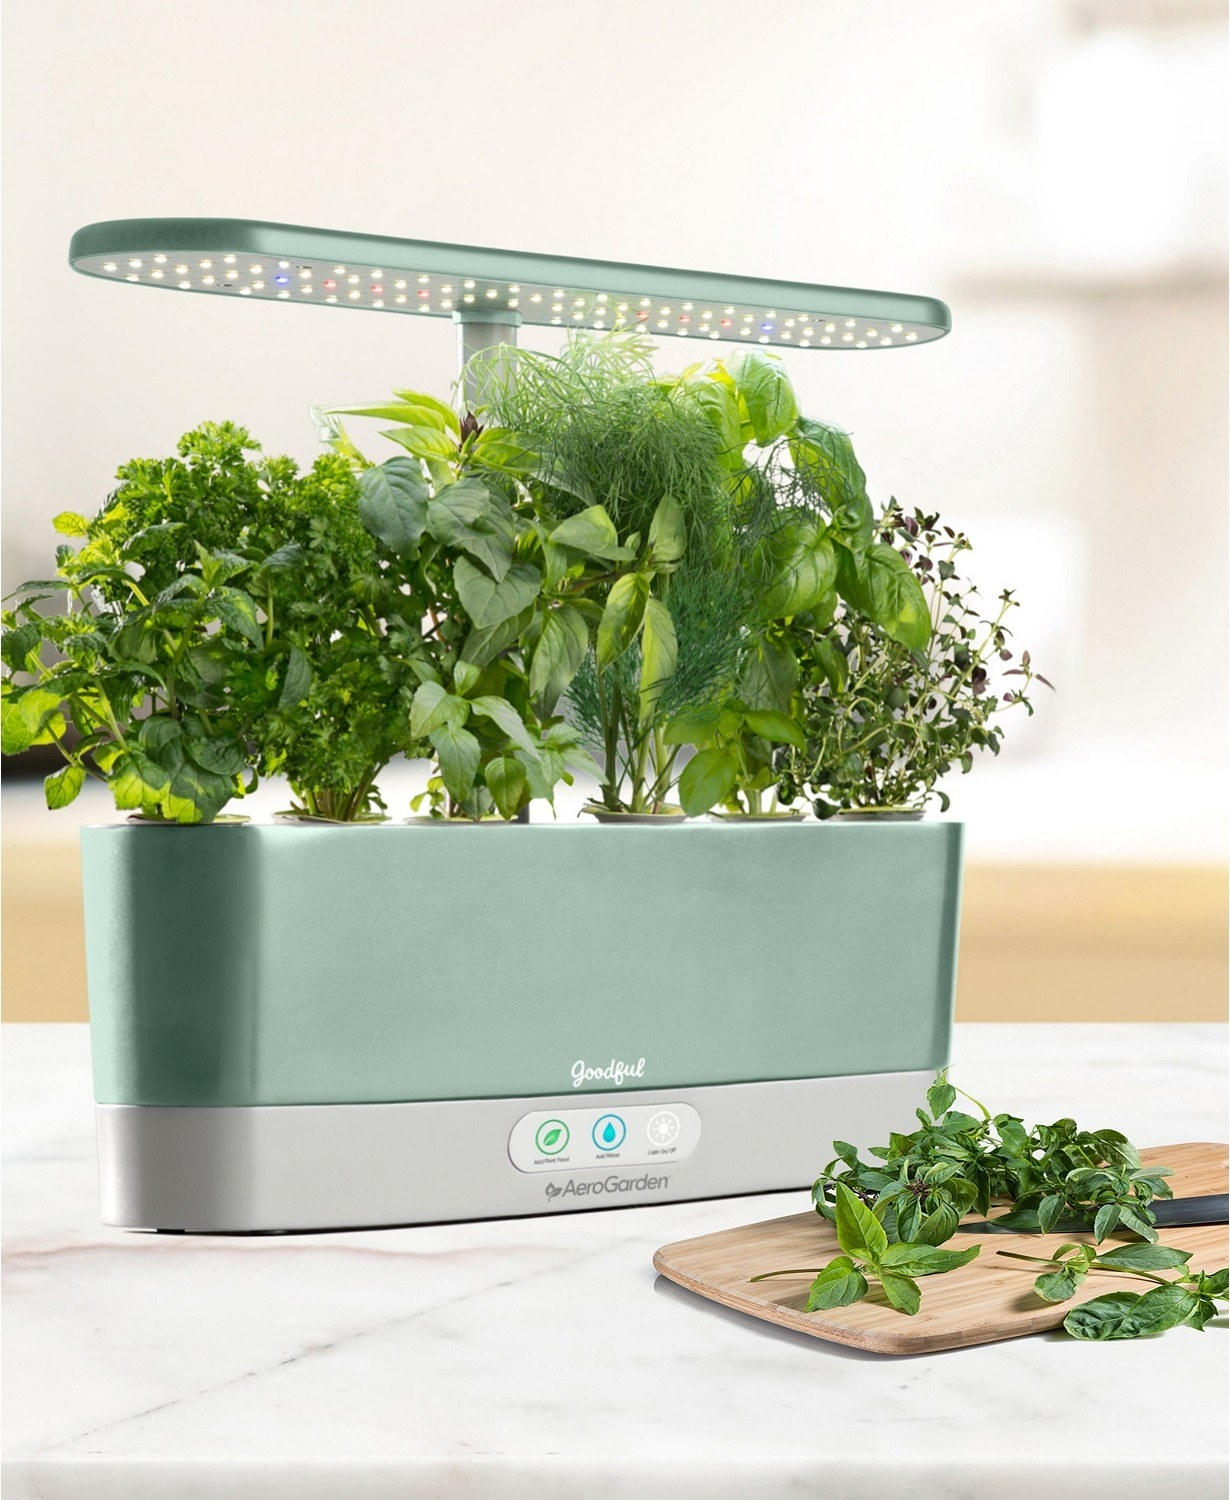 the aerogarden with herbs in it